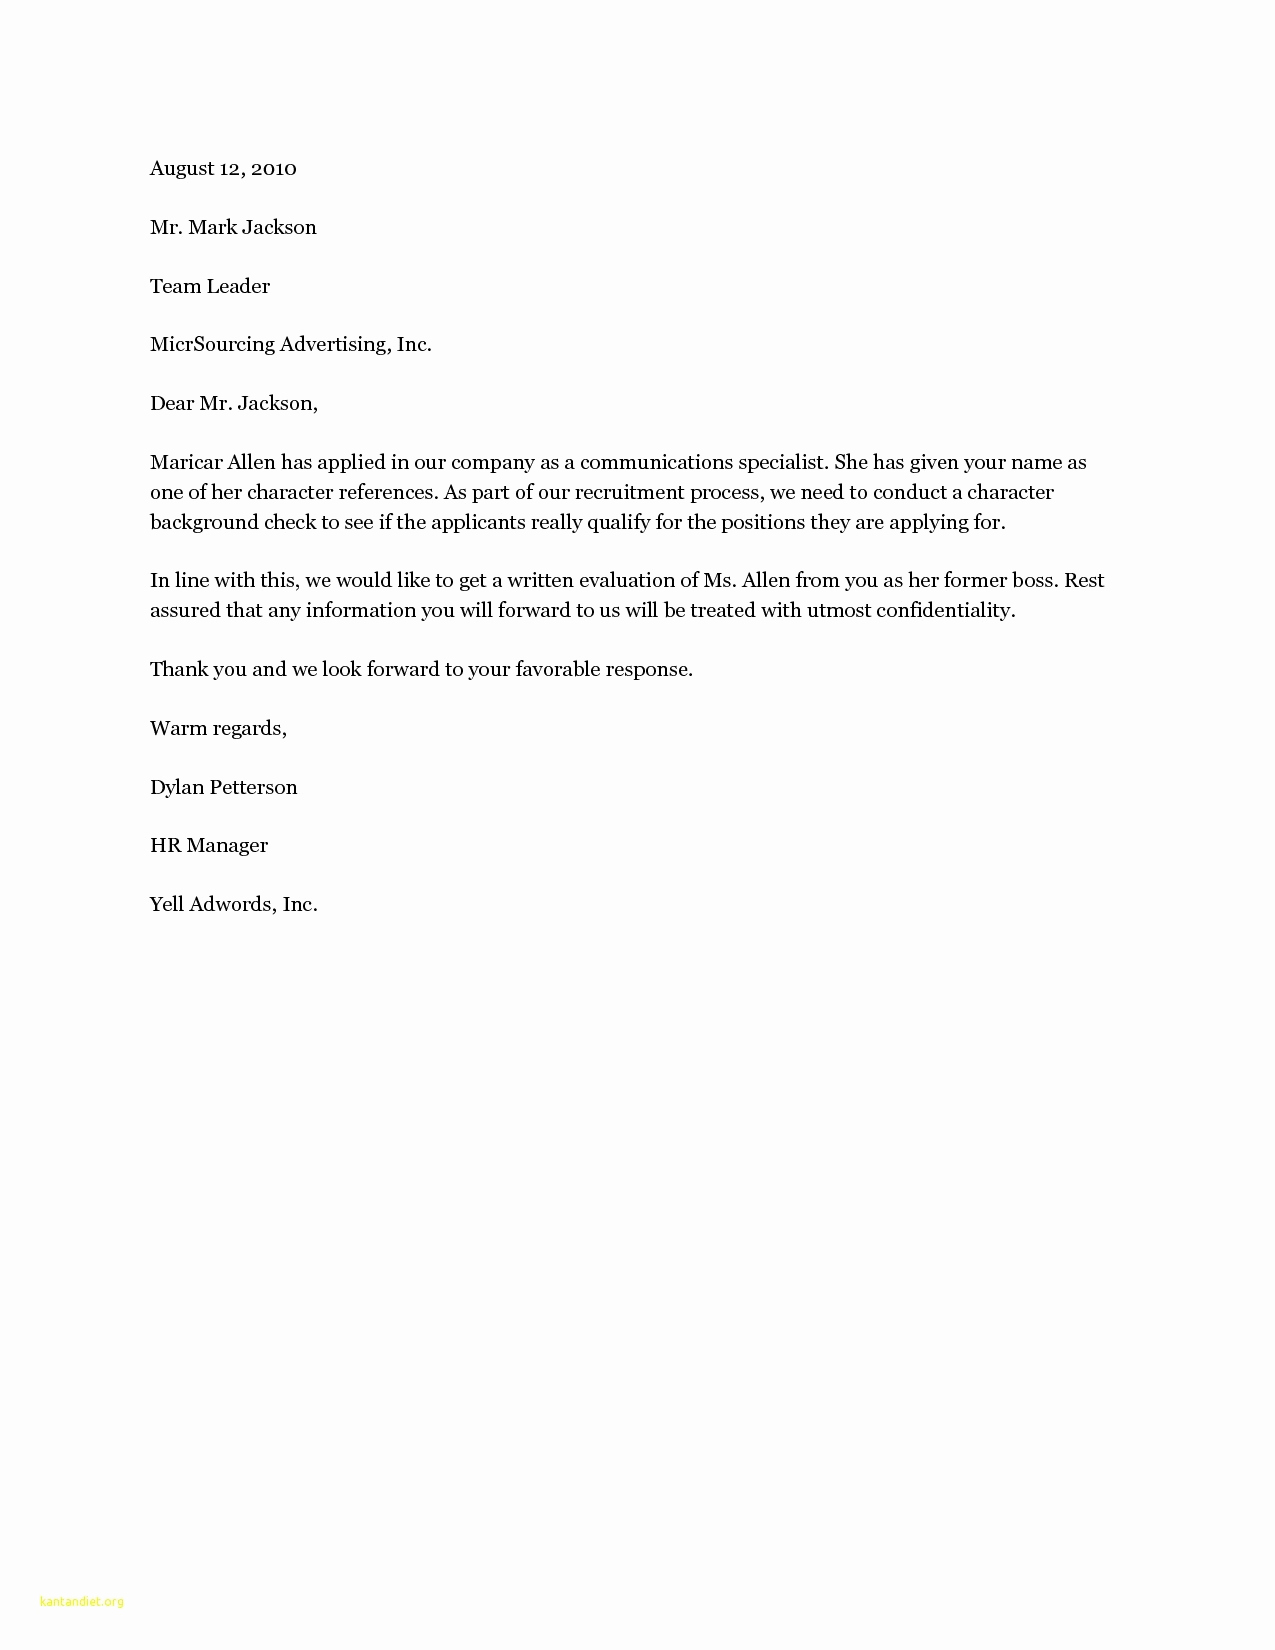 Reference Letter Template Word Document - 50 Fresh Cover Letter Template Word Doc